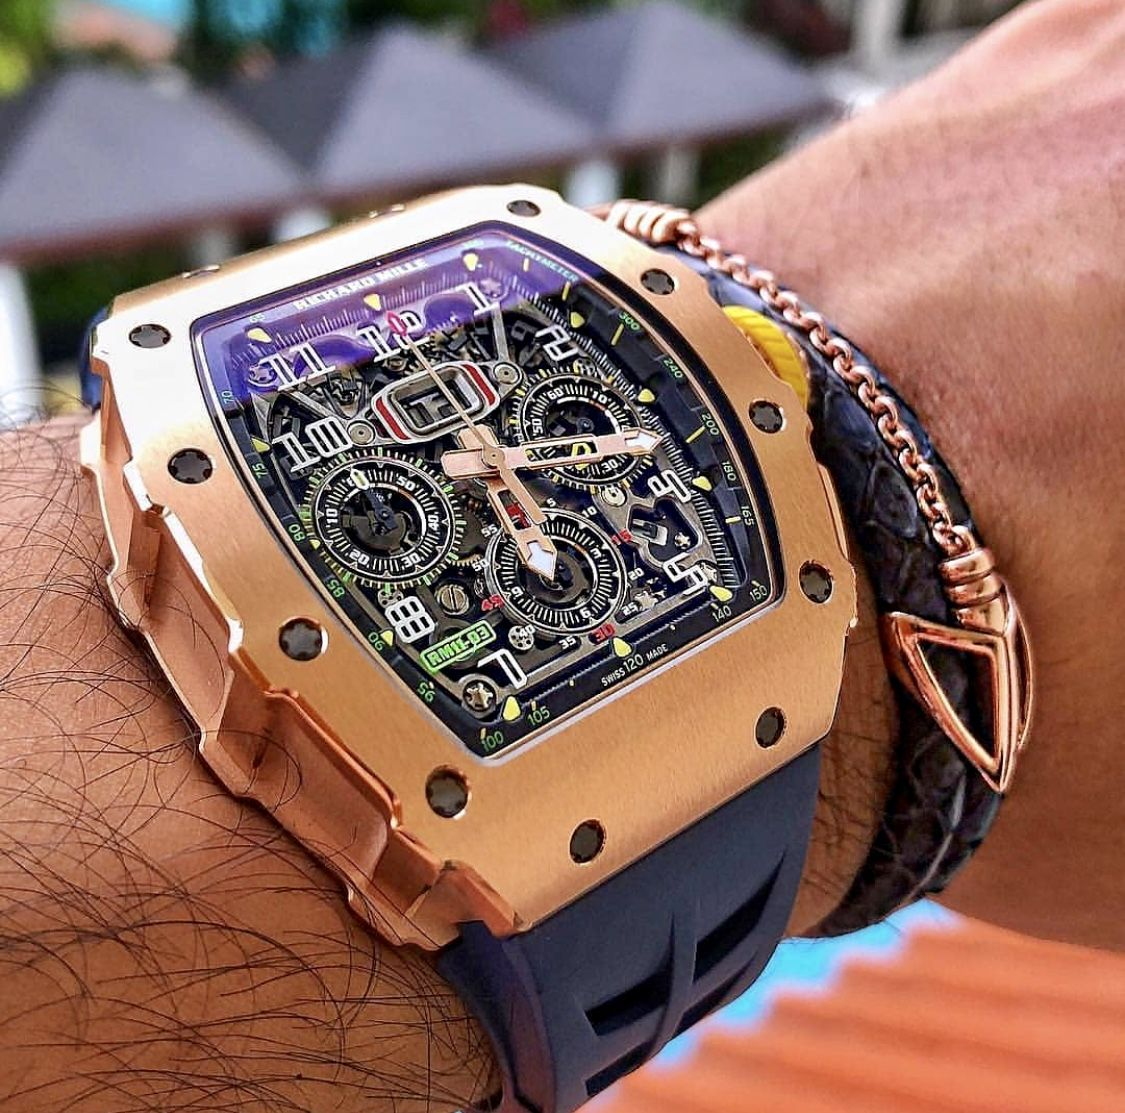 Richard Mille RM11-03 $115,000 | Luxury watches for men, Richard mille  watches men, Vintage watches for men